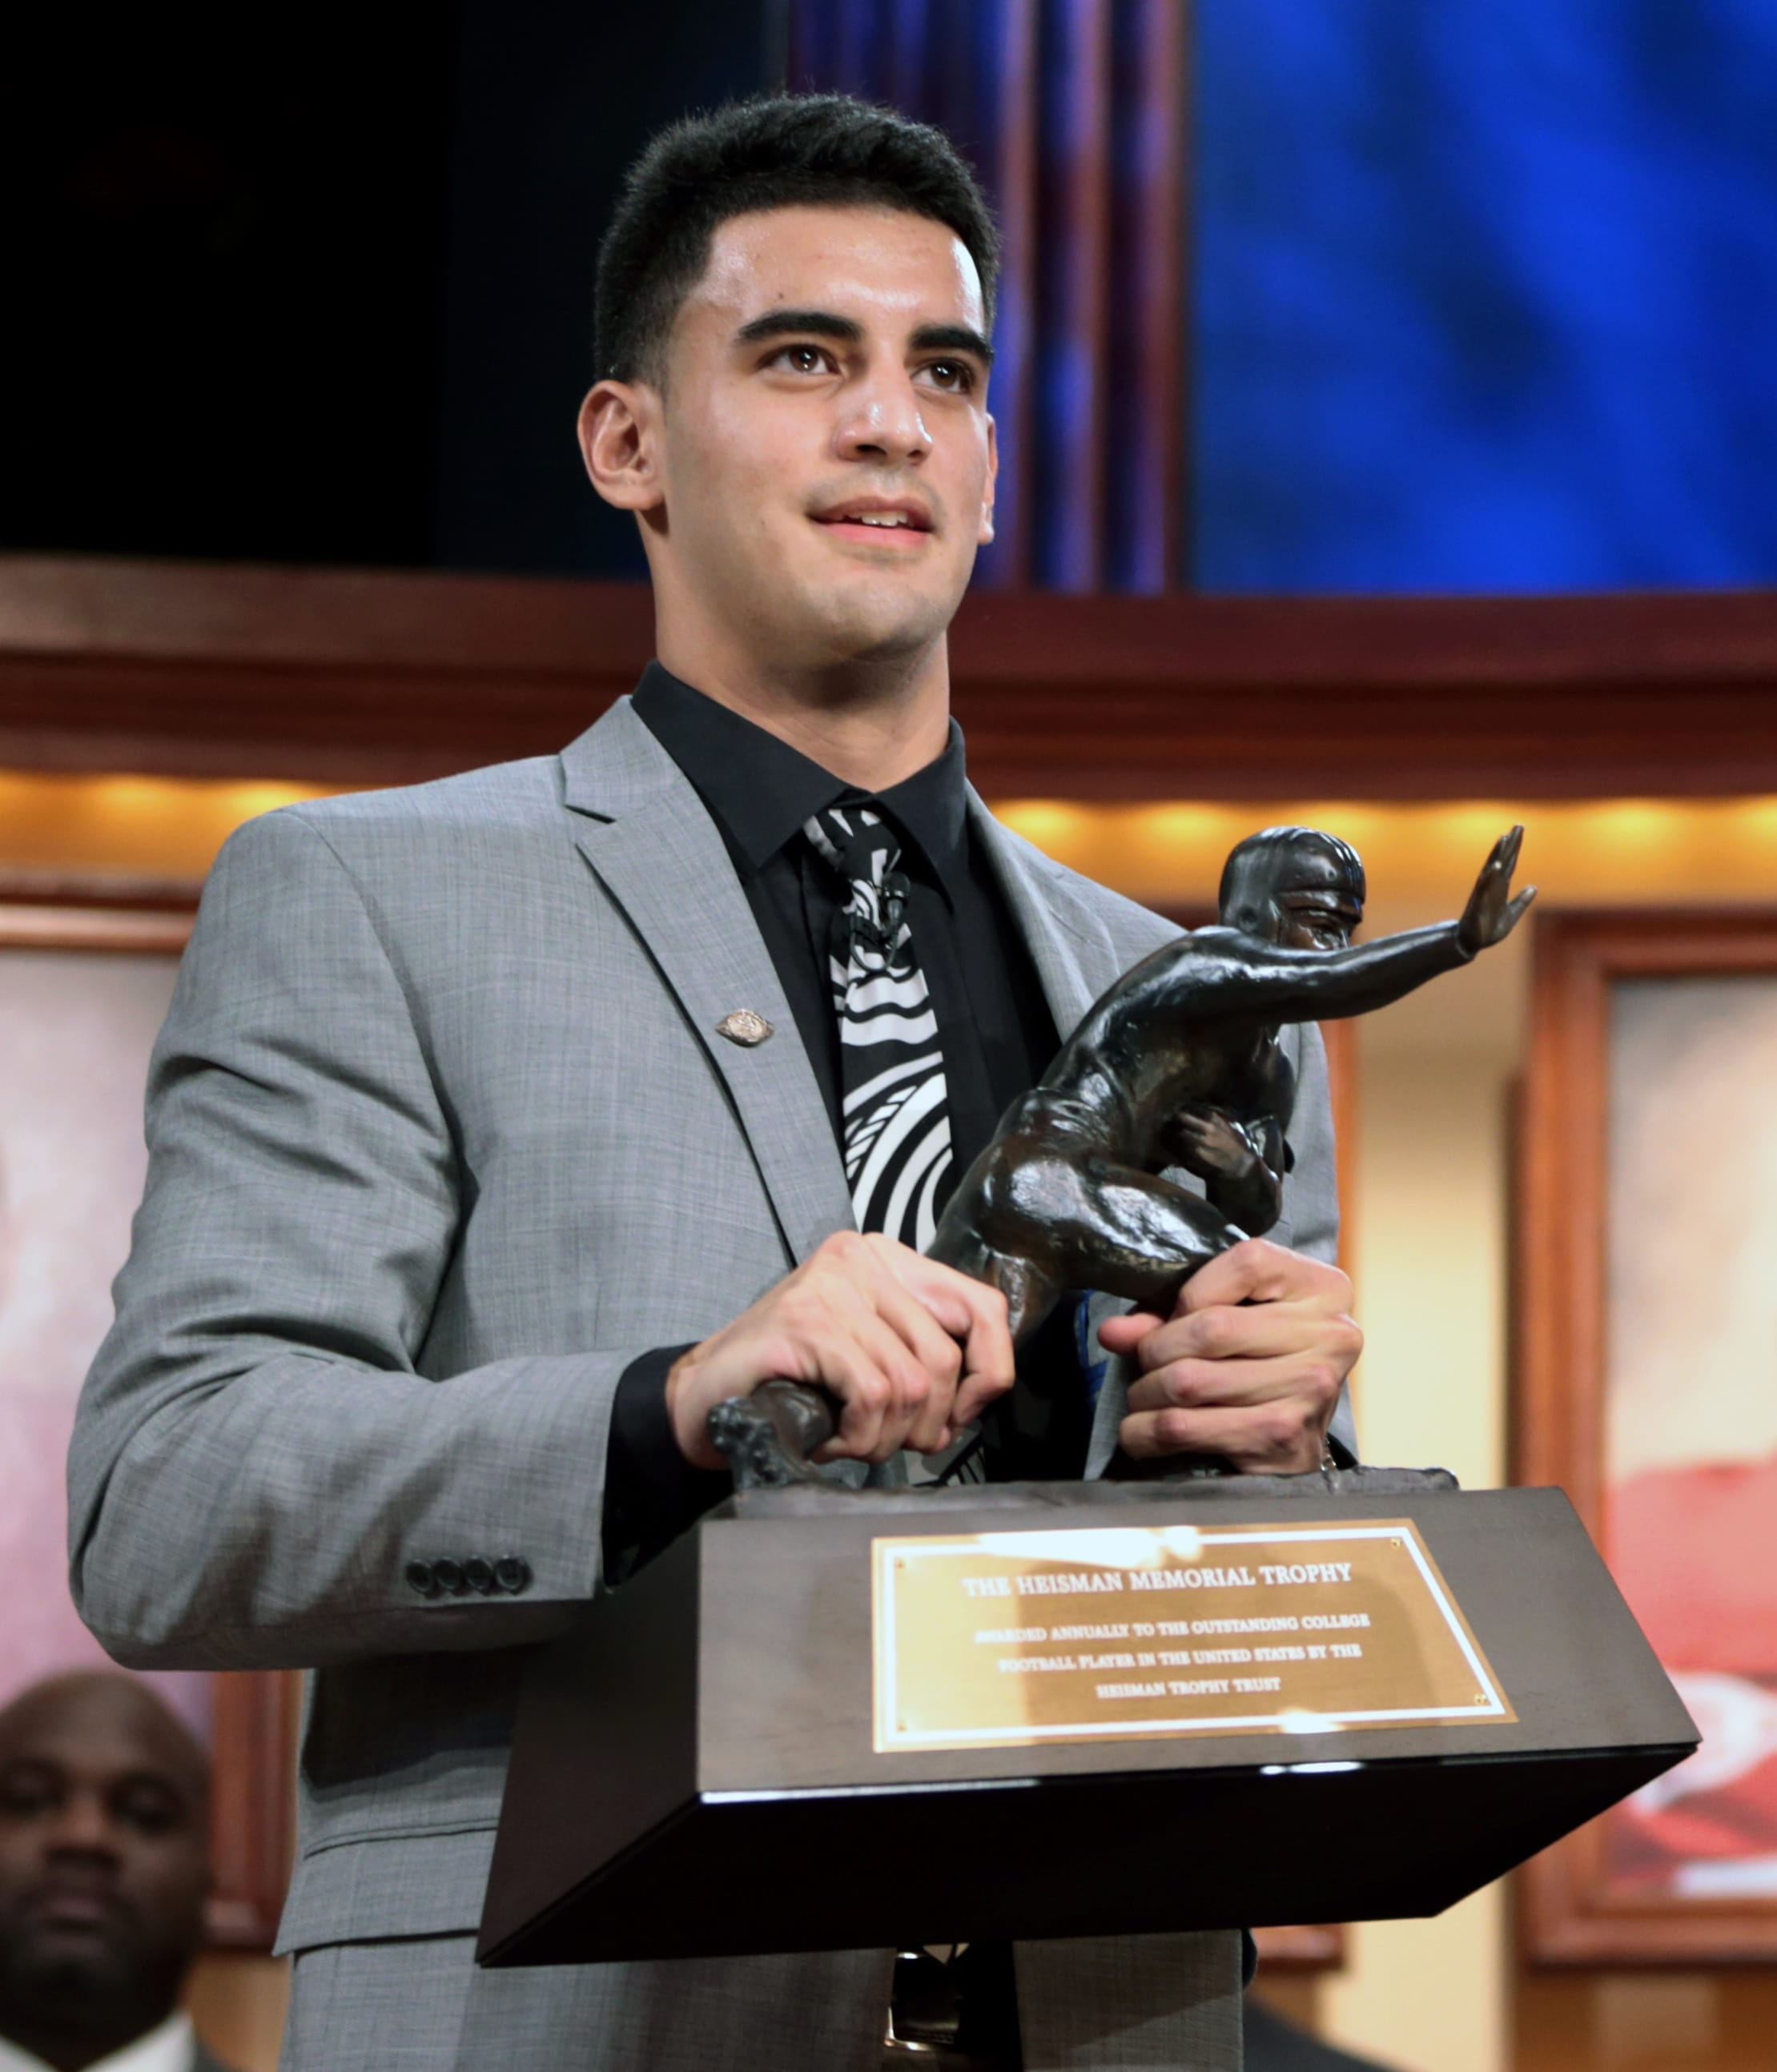 Oregon quarterback Marcus Mariota holds the Heisman Trophy after being named college football's best player during the Heisman Trophy presentation in New York on Saturday, Dec. 13, 2013. (AP Photo/Heisman Trust, Kelly Kline)